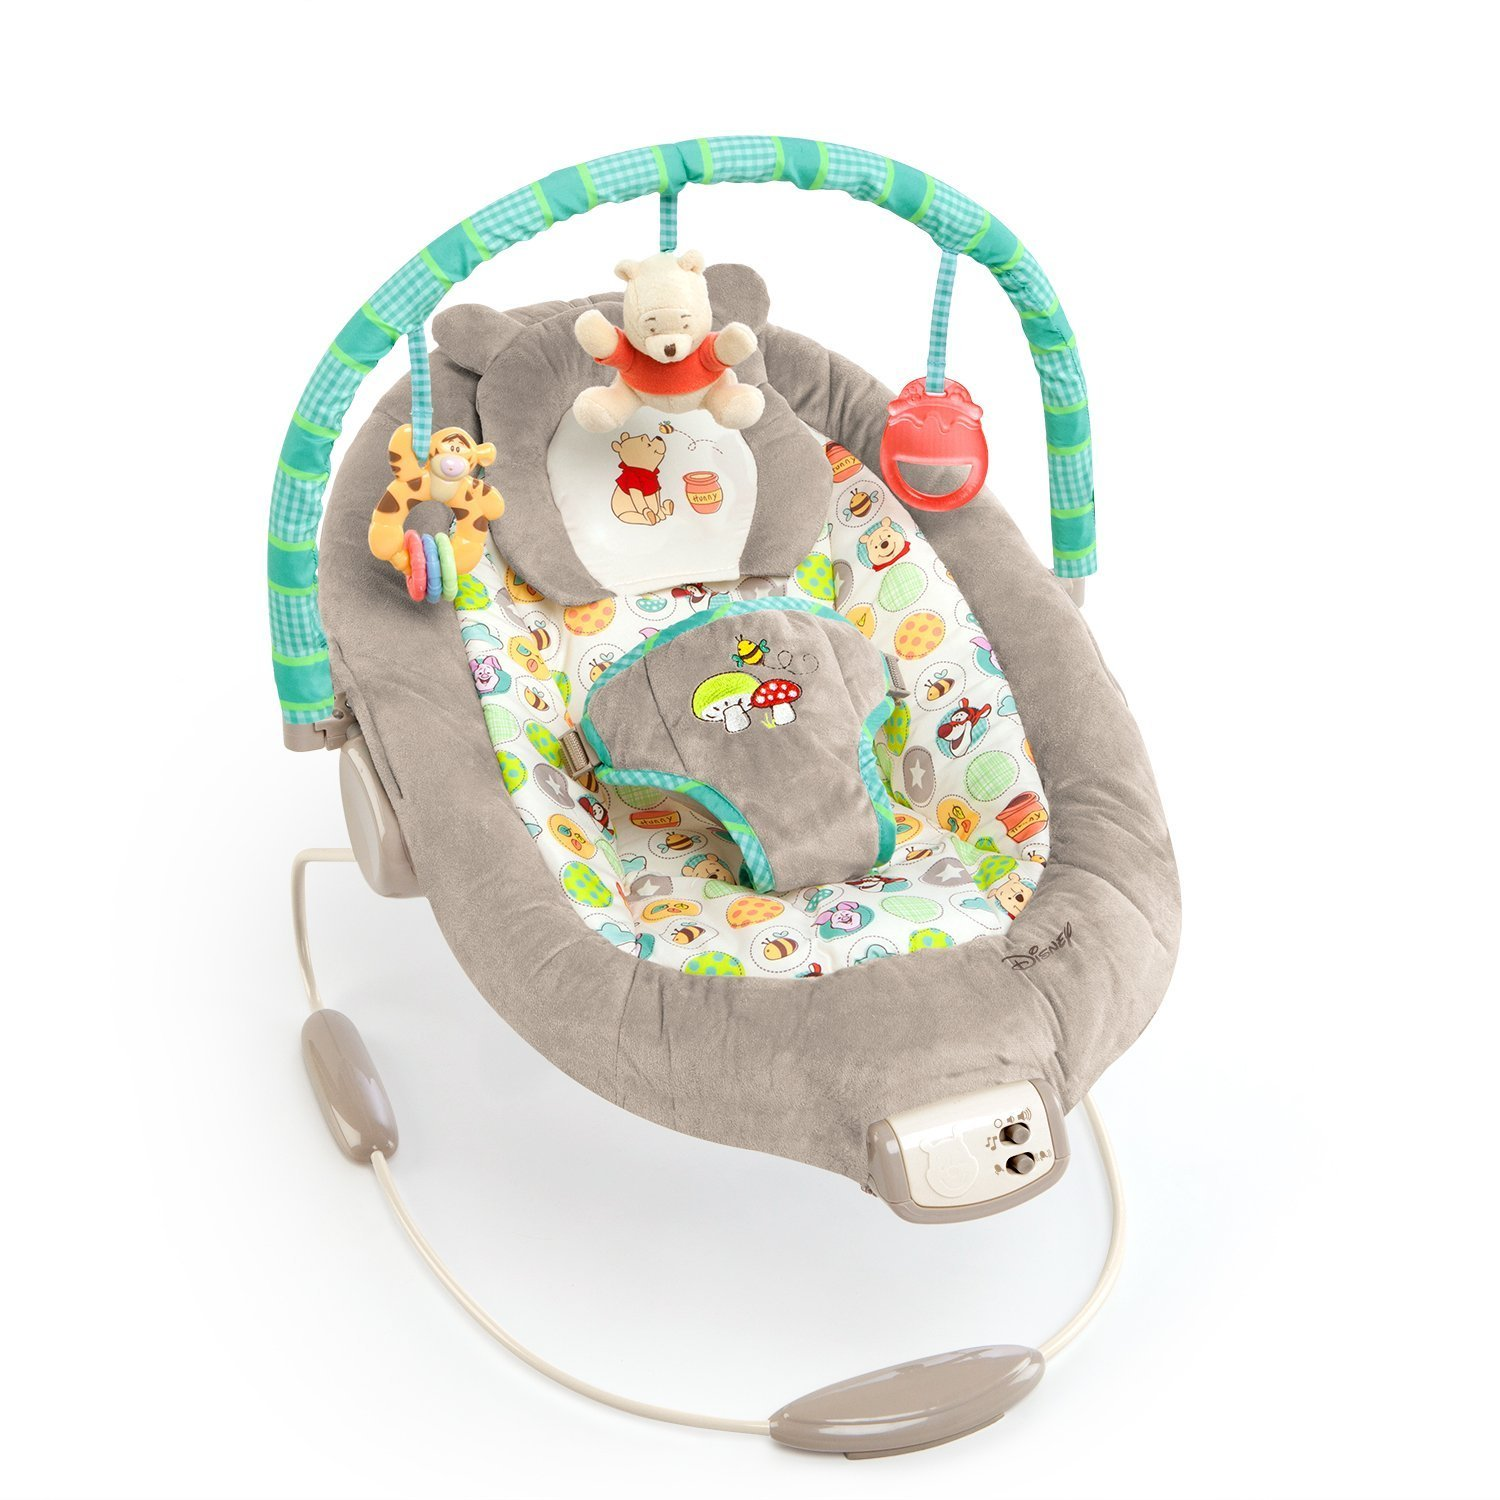 baby chair that vibrates pier one bistro table and chairs bouncer winnie pooh bright starts sears com mx me